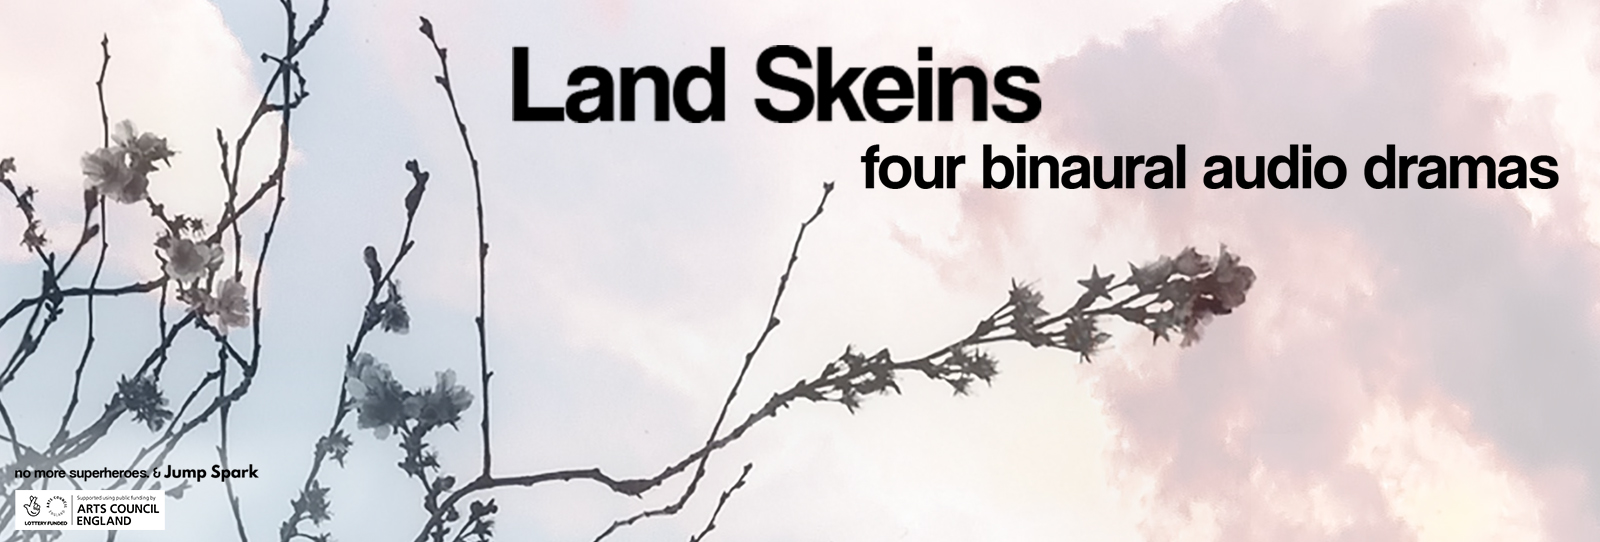 Land Skeins